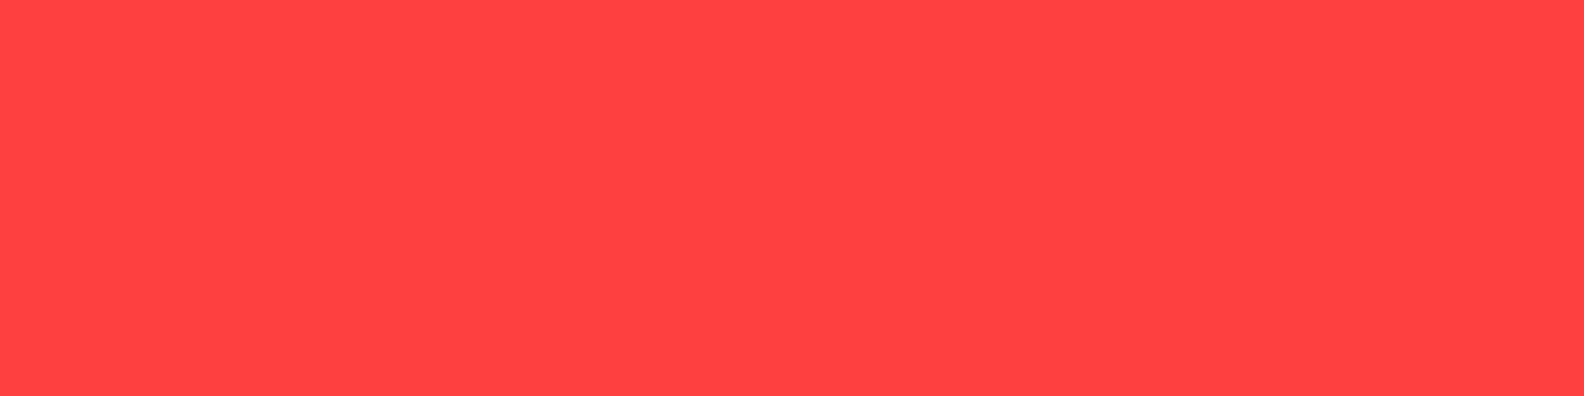 1584x396 Coral Red Solid Color Background